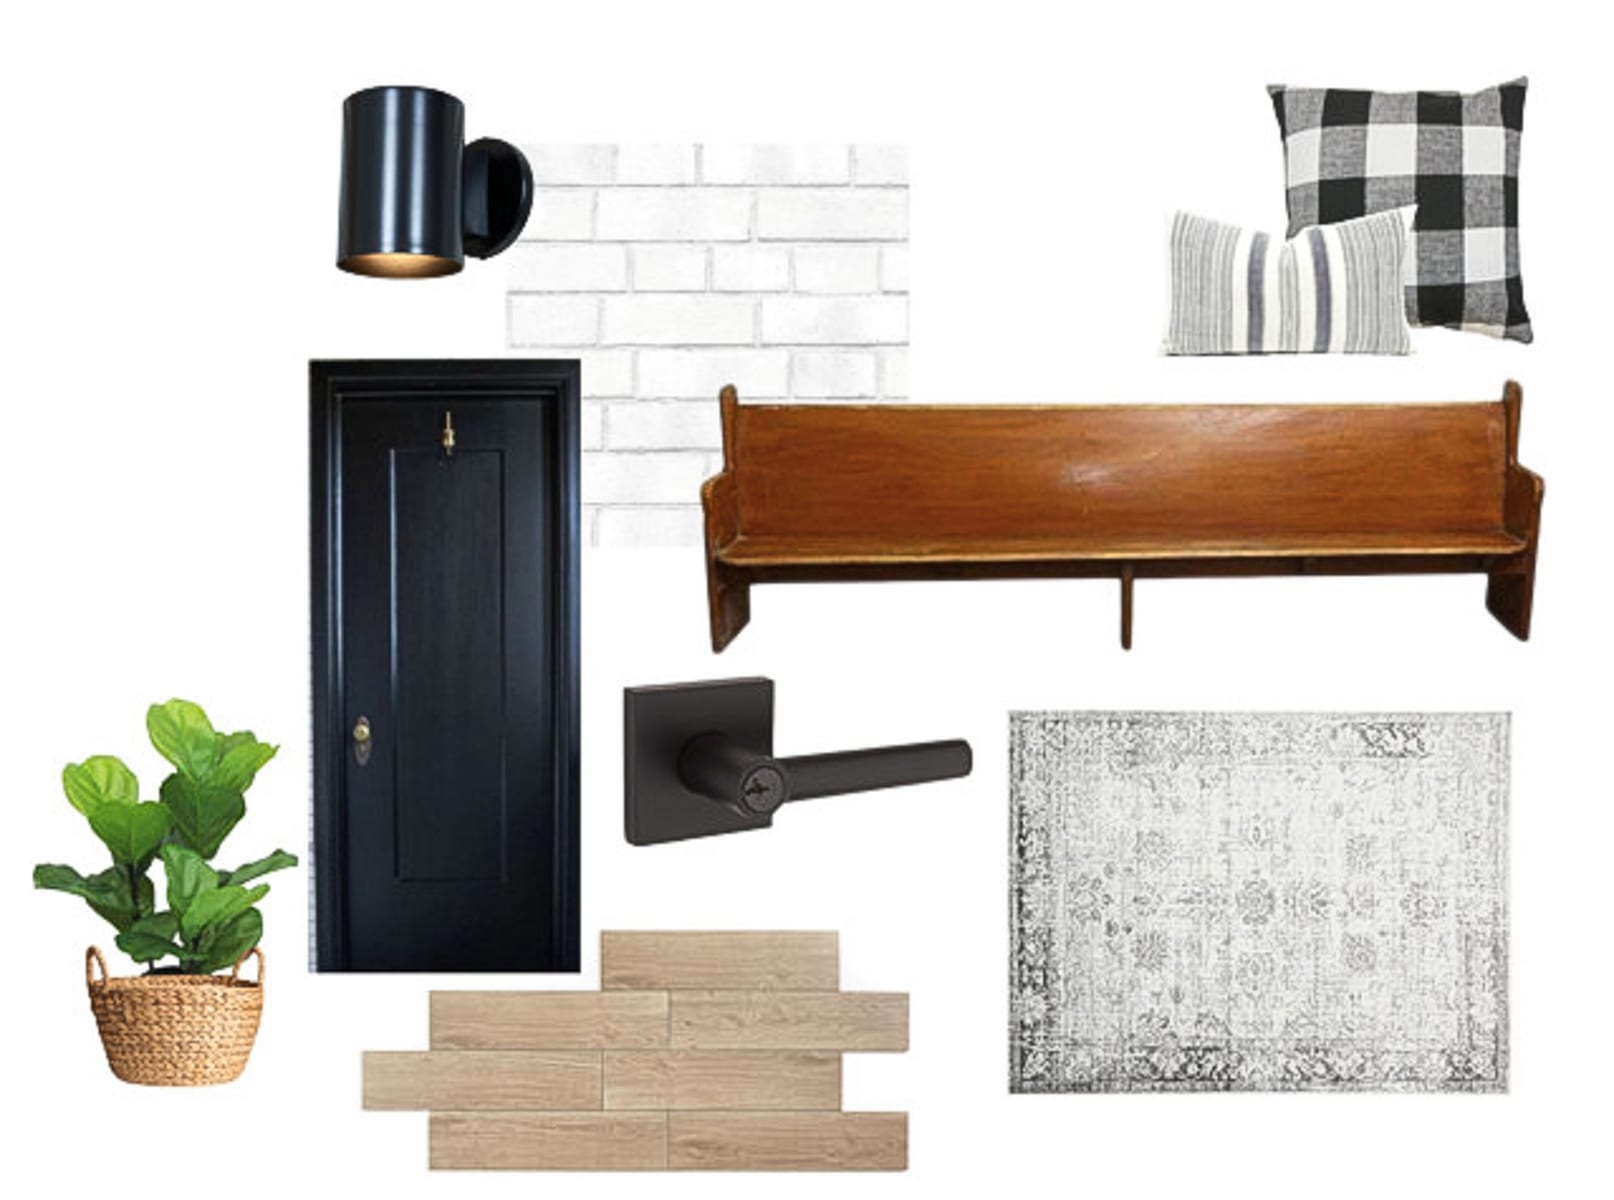 Our design inspiration board for our mudroom area.